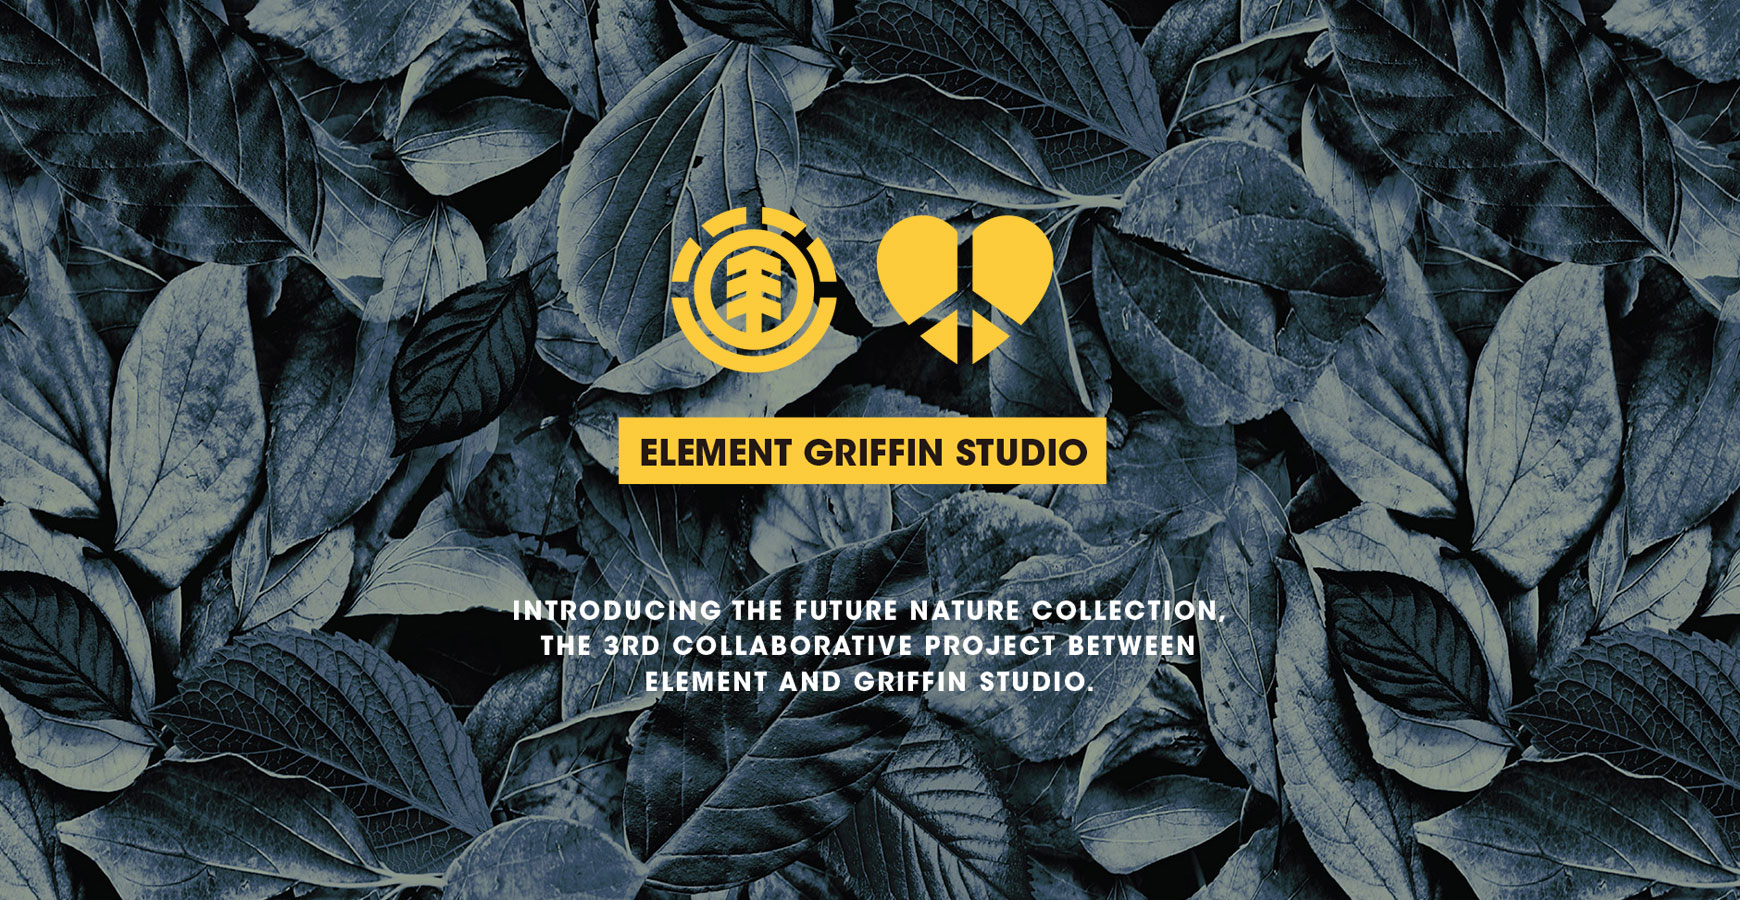 ELEMENT GRIFFIN STUDIO